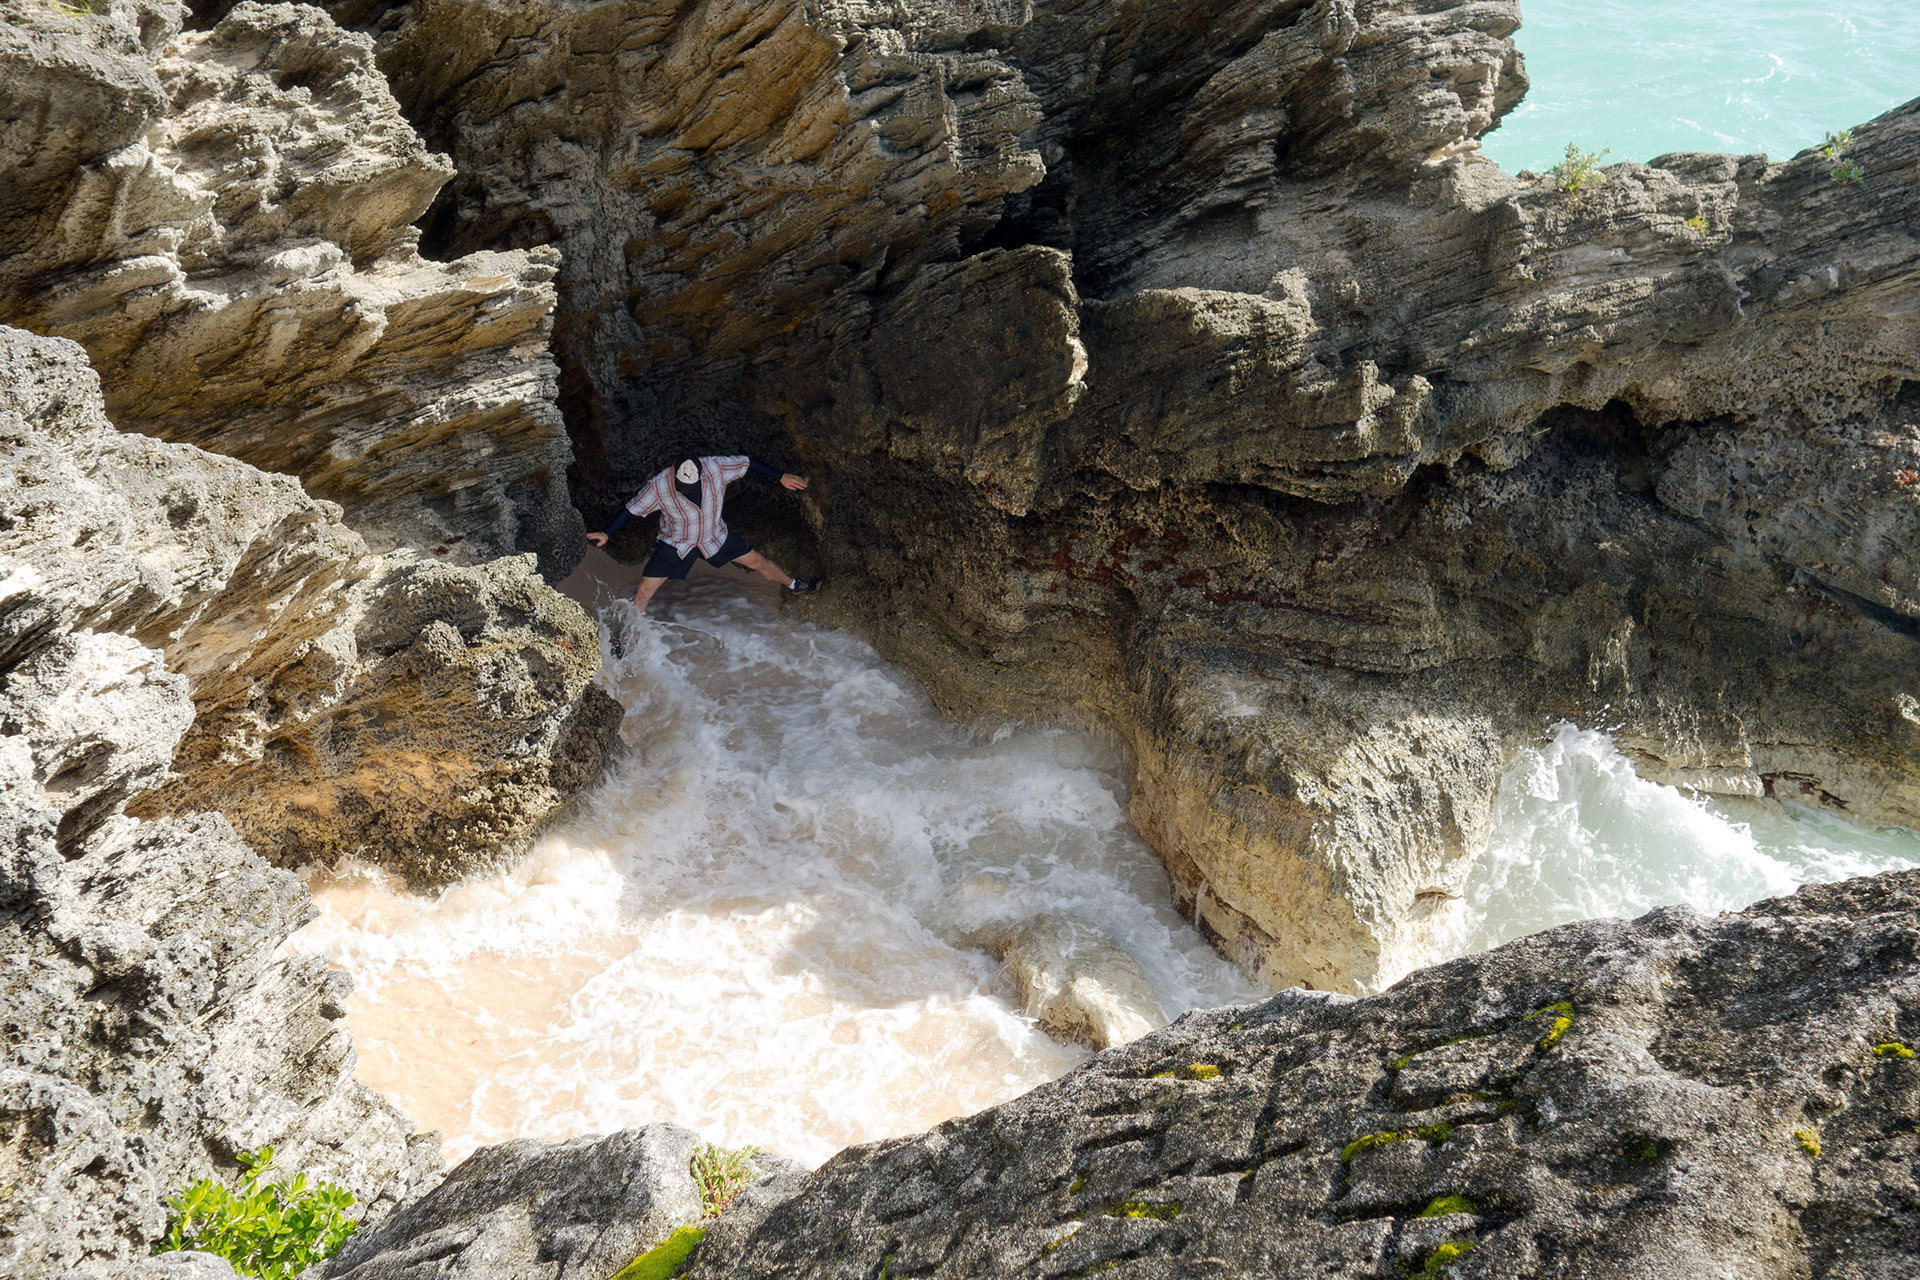 Matt exploring one of the coves in Bermuda.